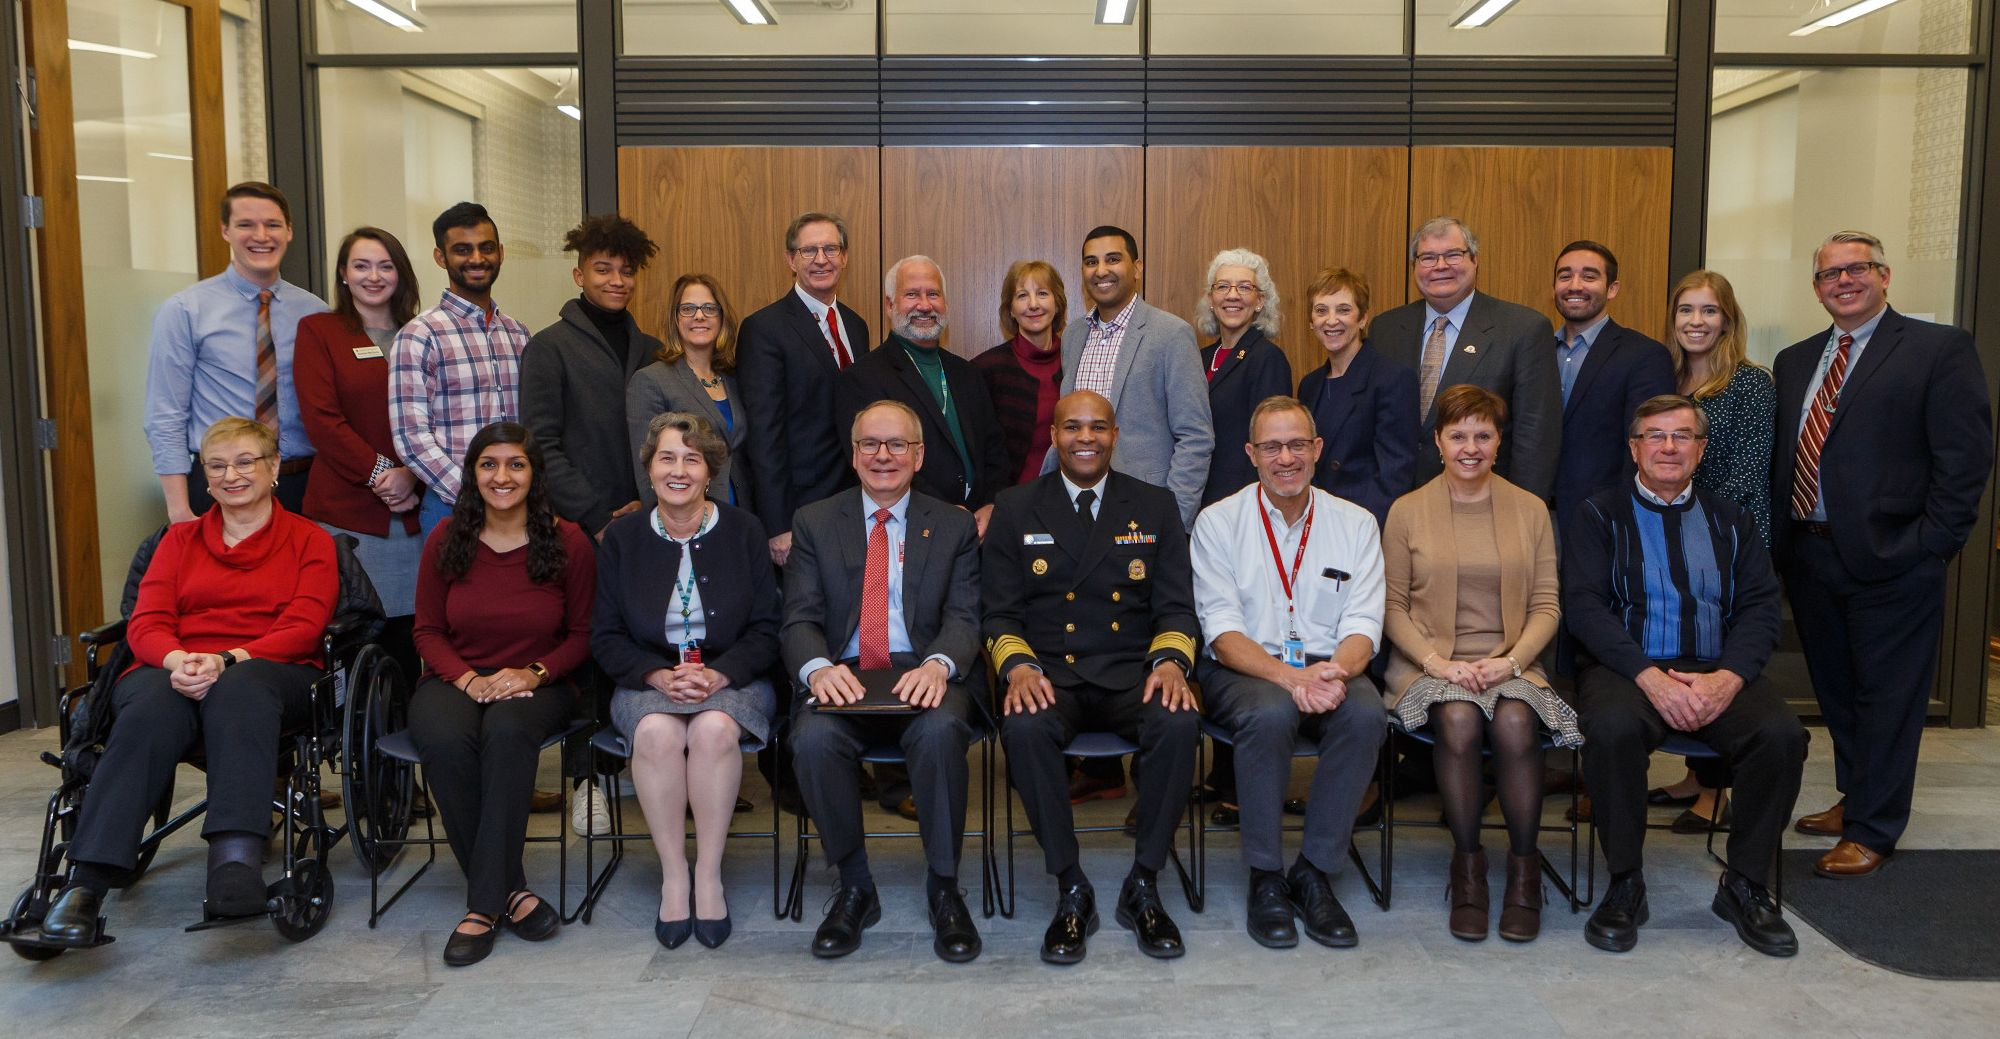 U.S. Surgeon General Jerome Adams poses with IU leaders and students